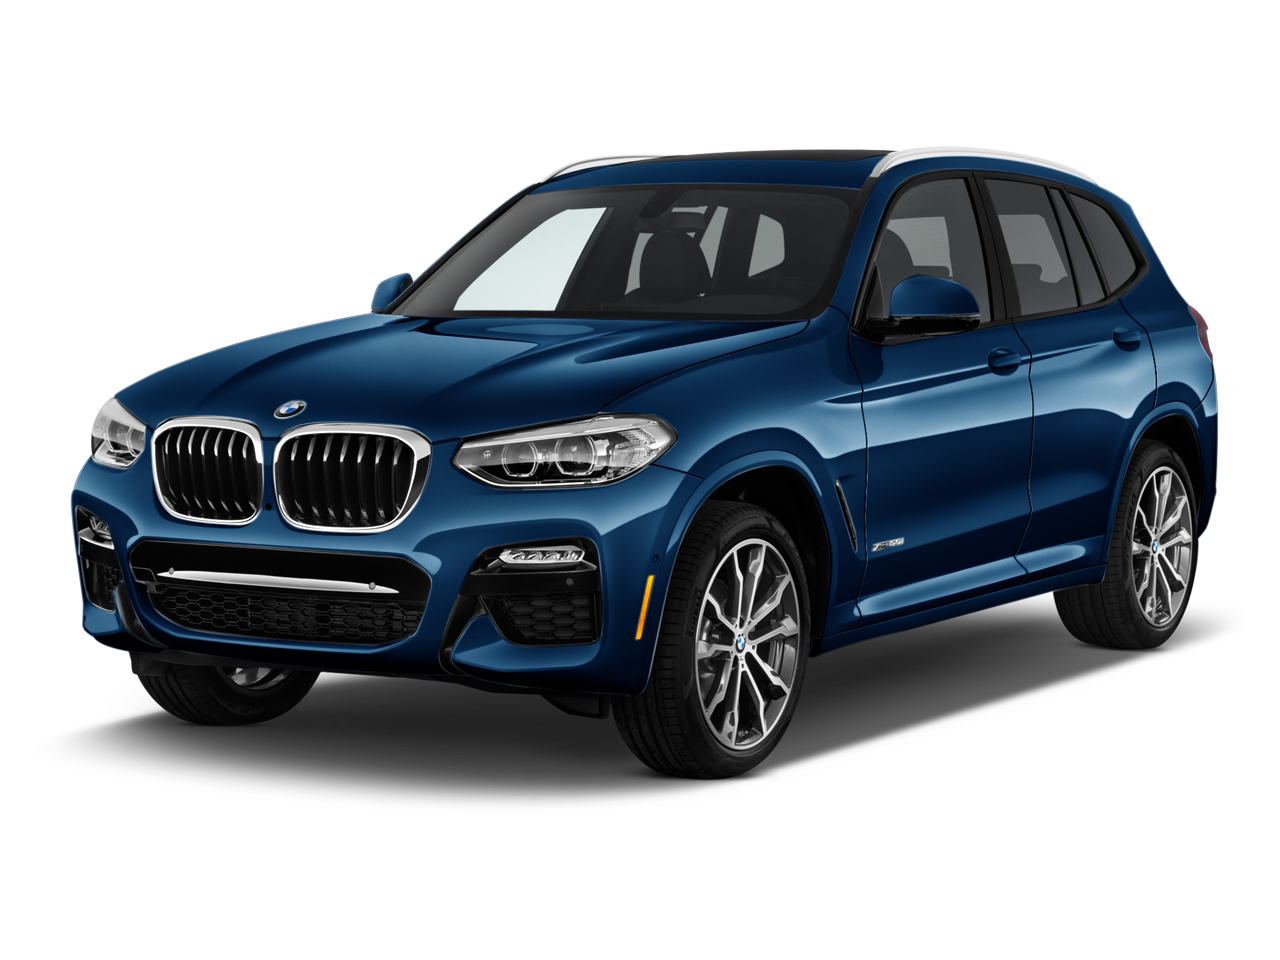 New 2018 Bmw X3 Xdrive30i Loaner In Edmond Ok Jackie